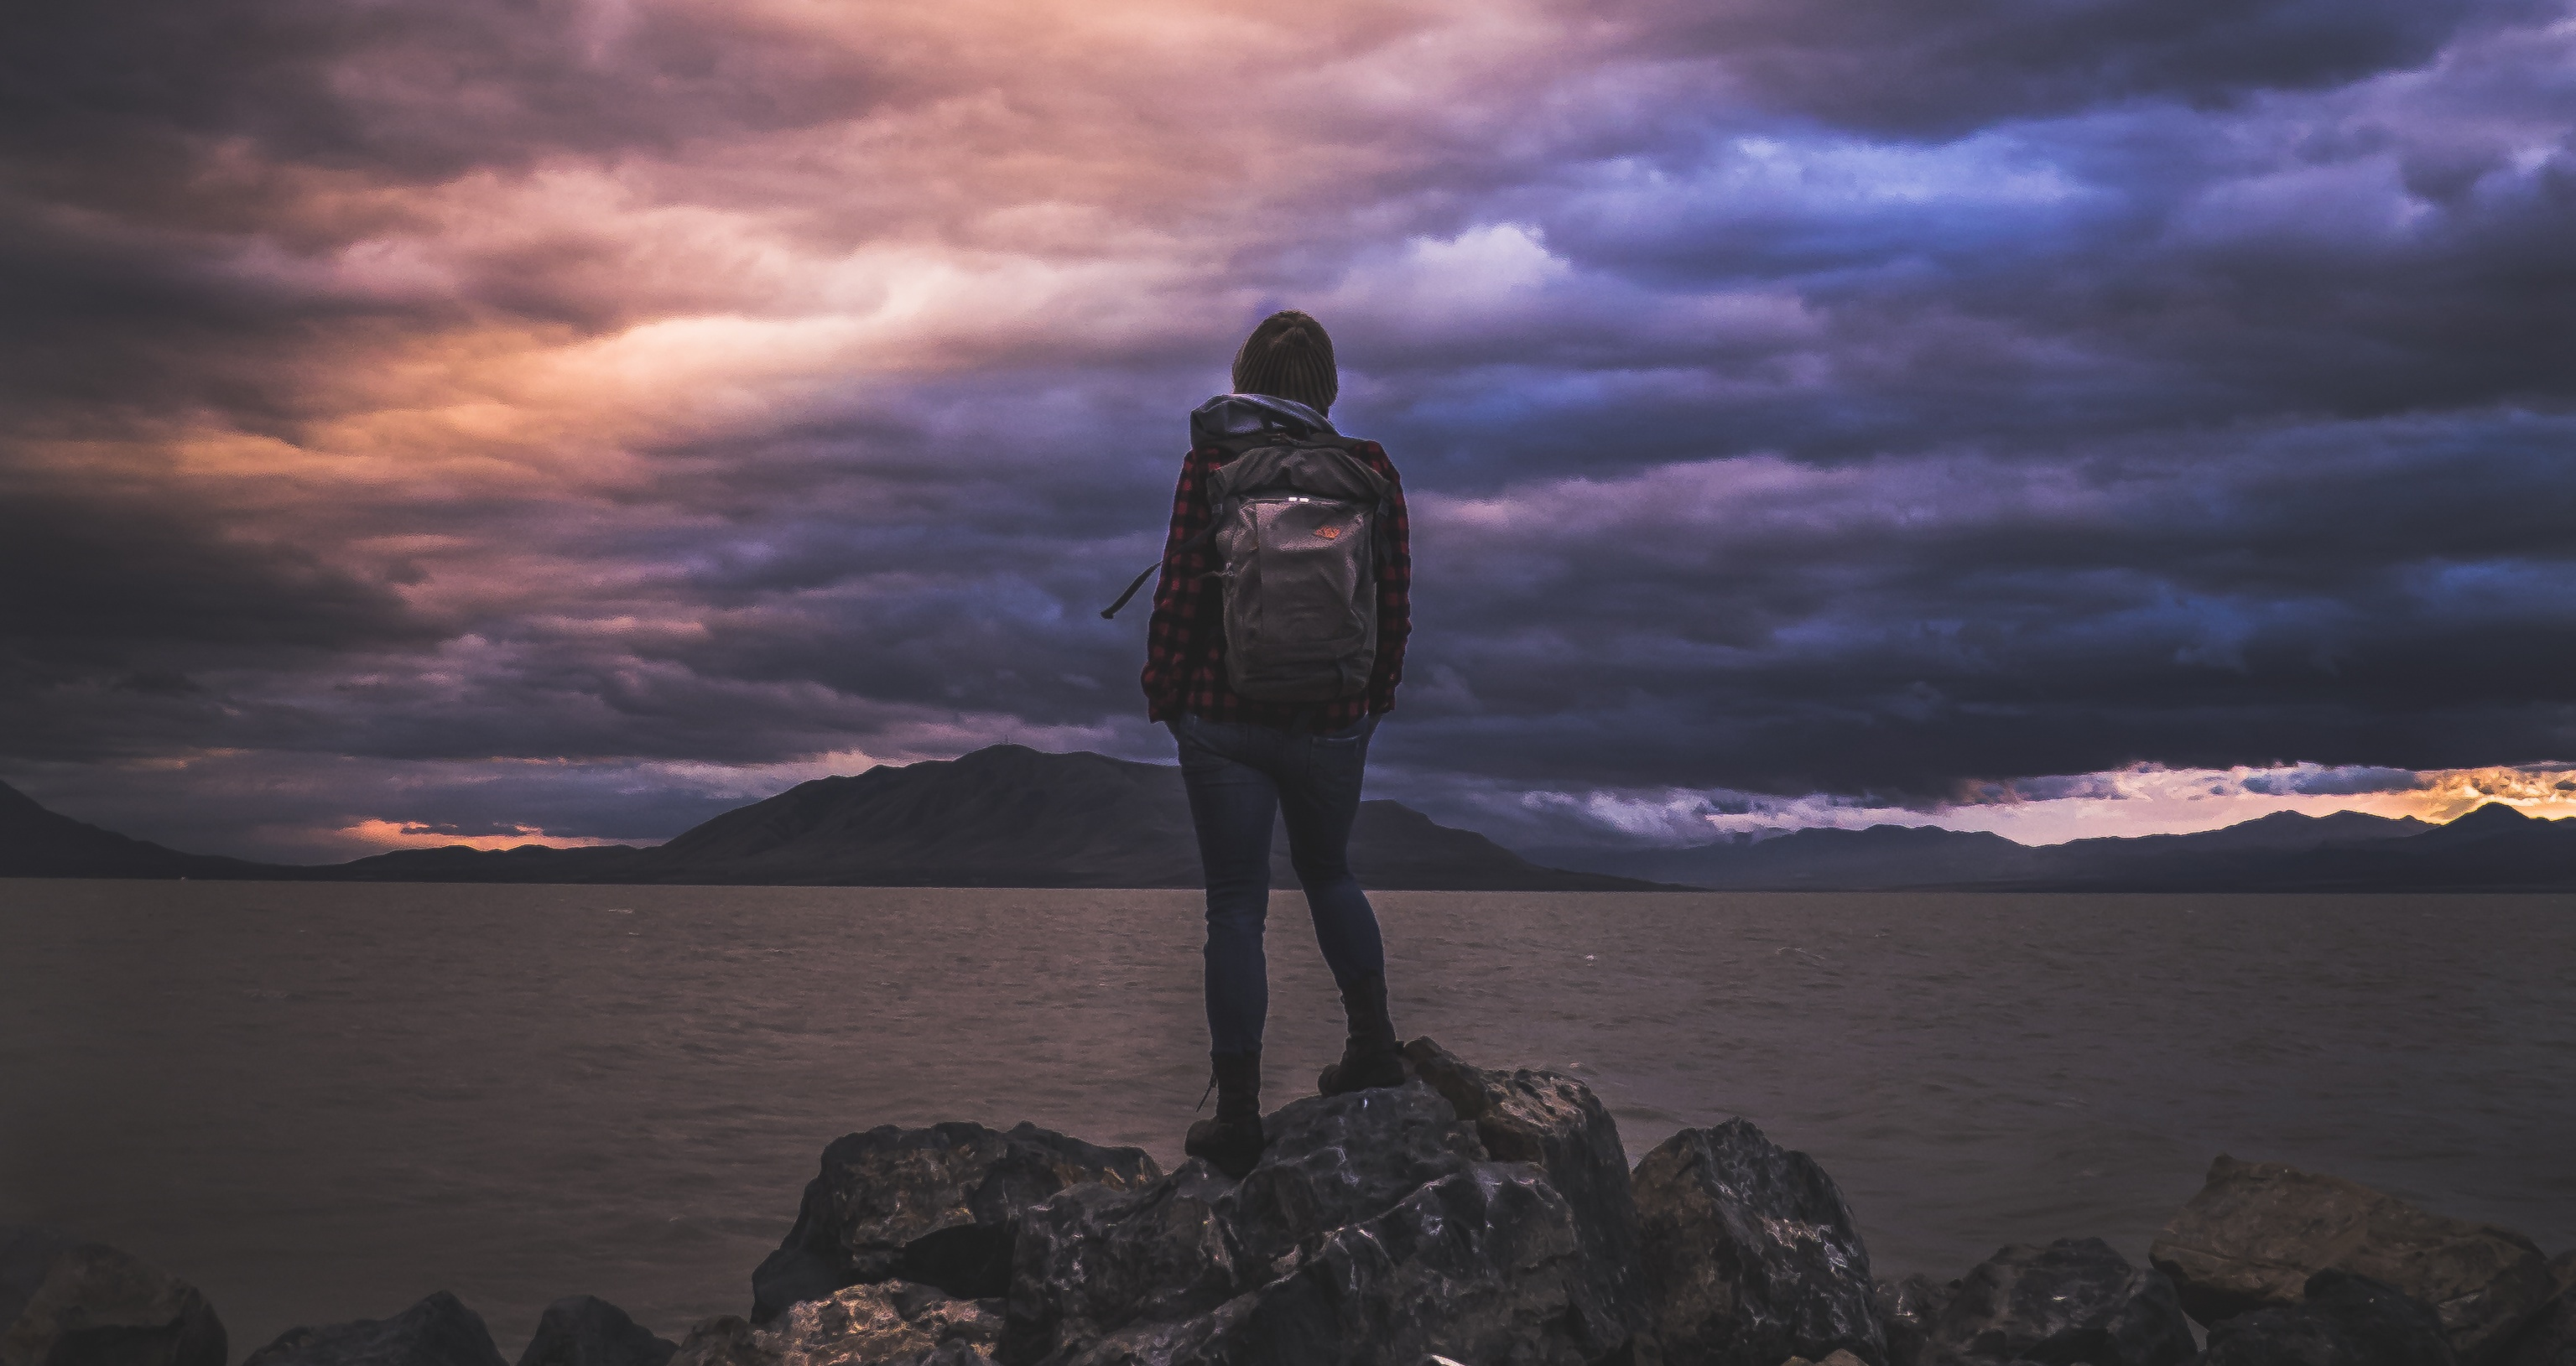 Figure wearing a backpack standing on rocks in front of a lake with a dramatic, cloudy sky